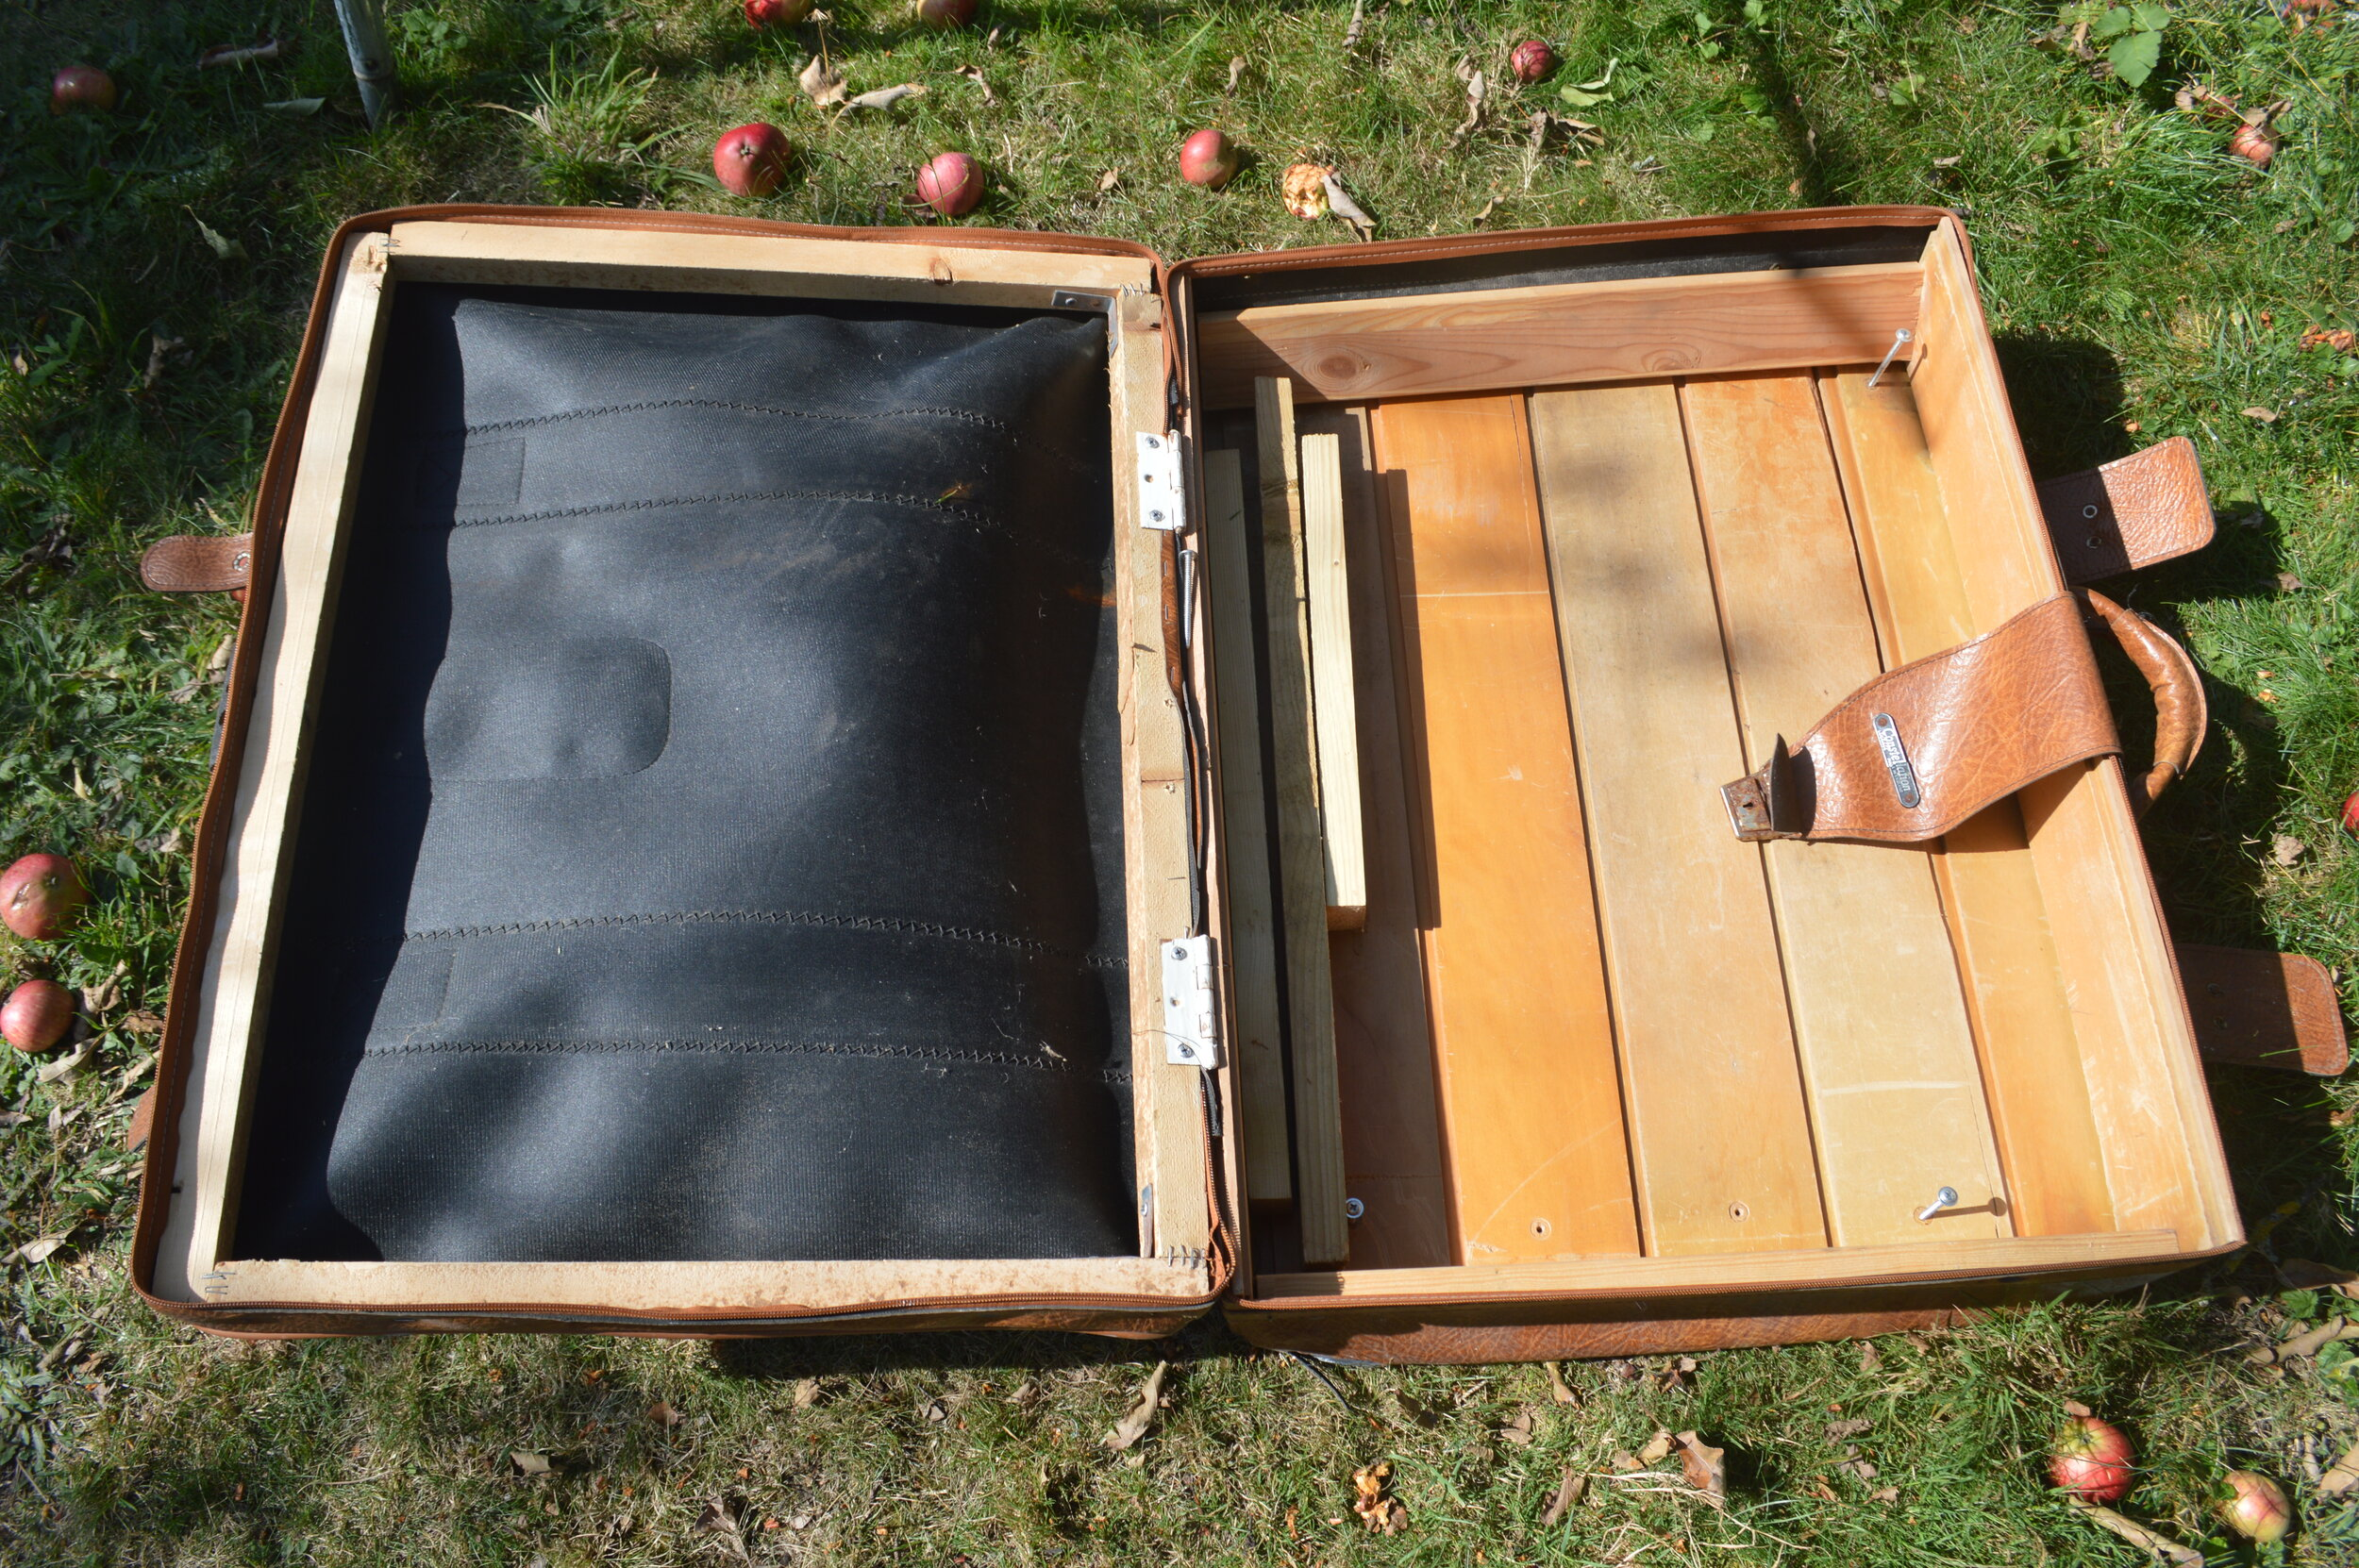 Leather case open on grass with wooden frame